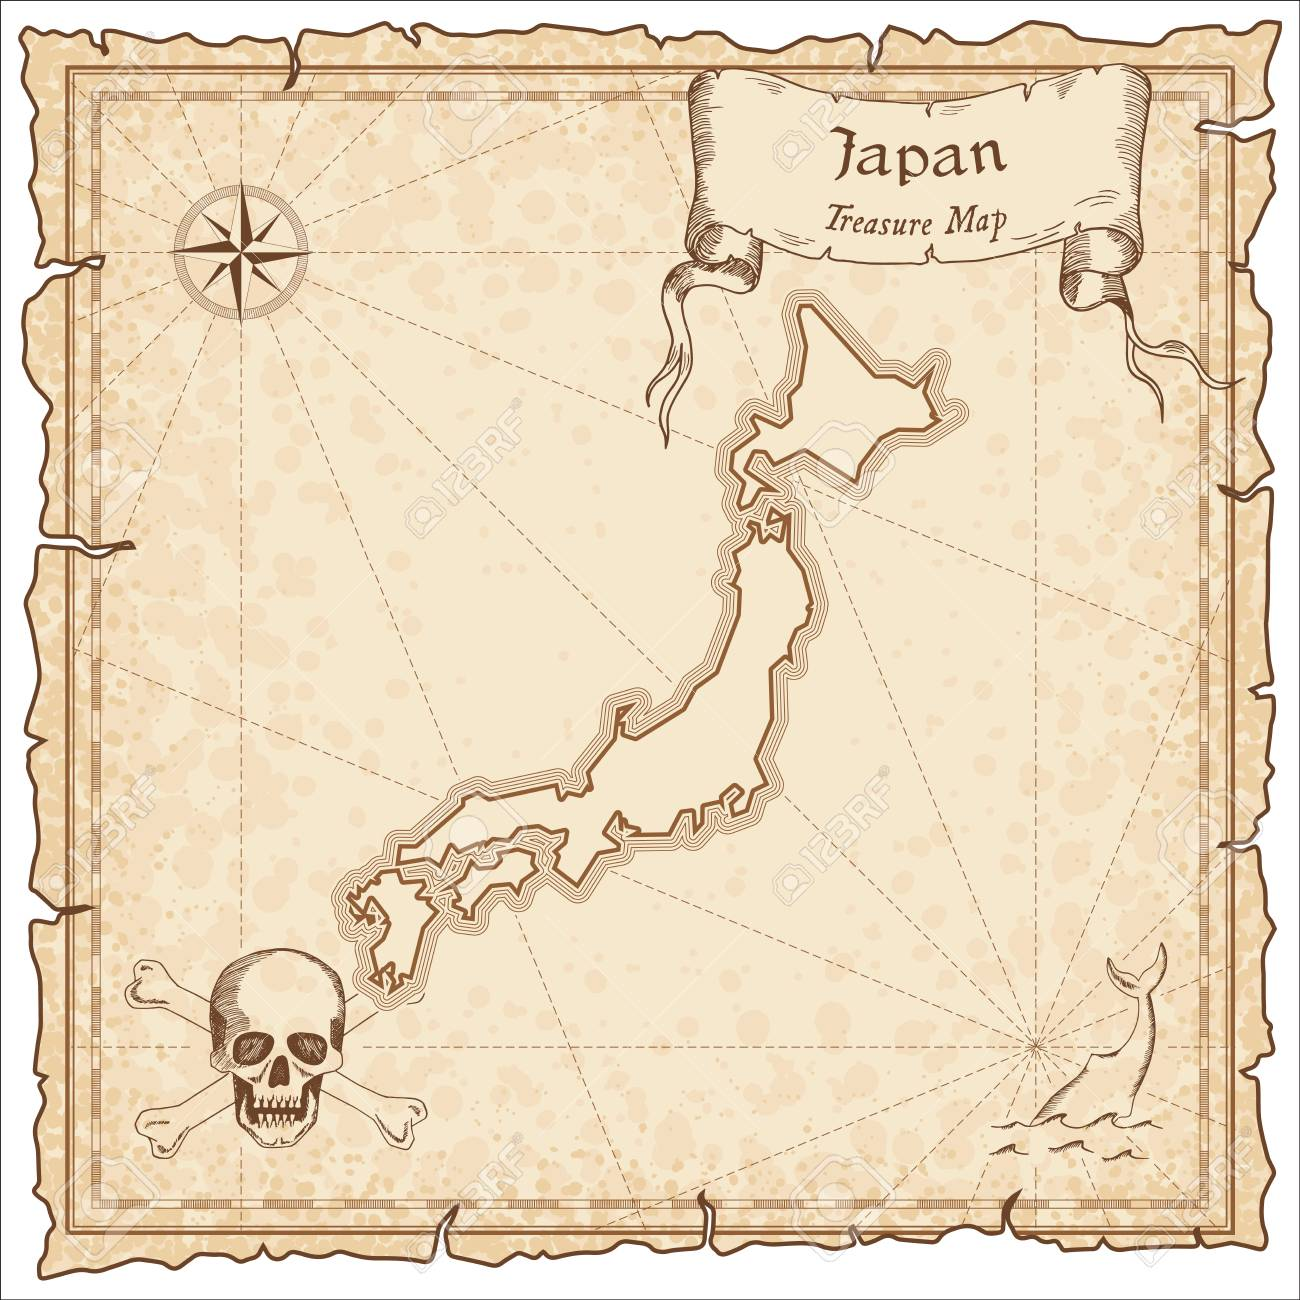 Japan Old Pirate Map Sepia Engraved Template Of Treasure Stylized On